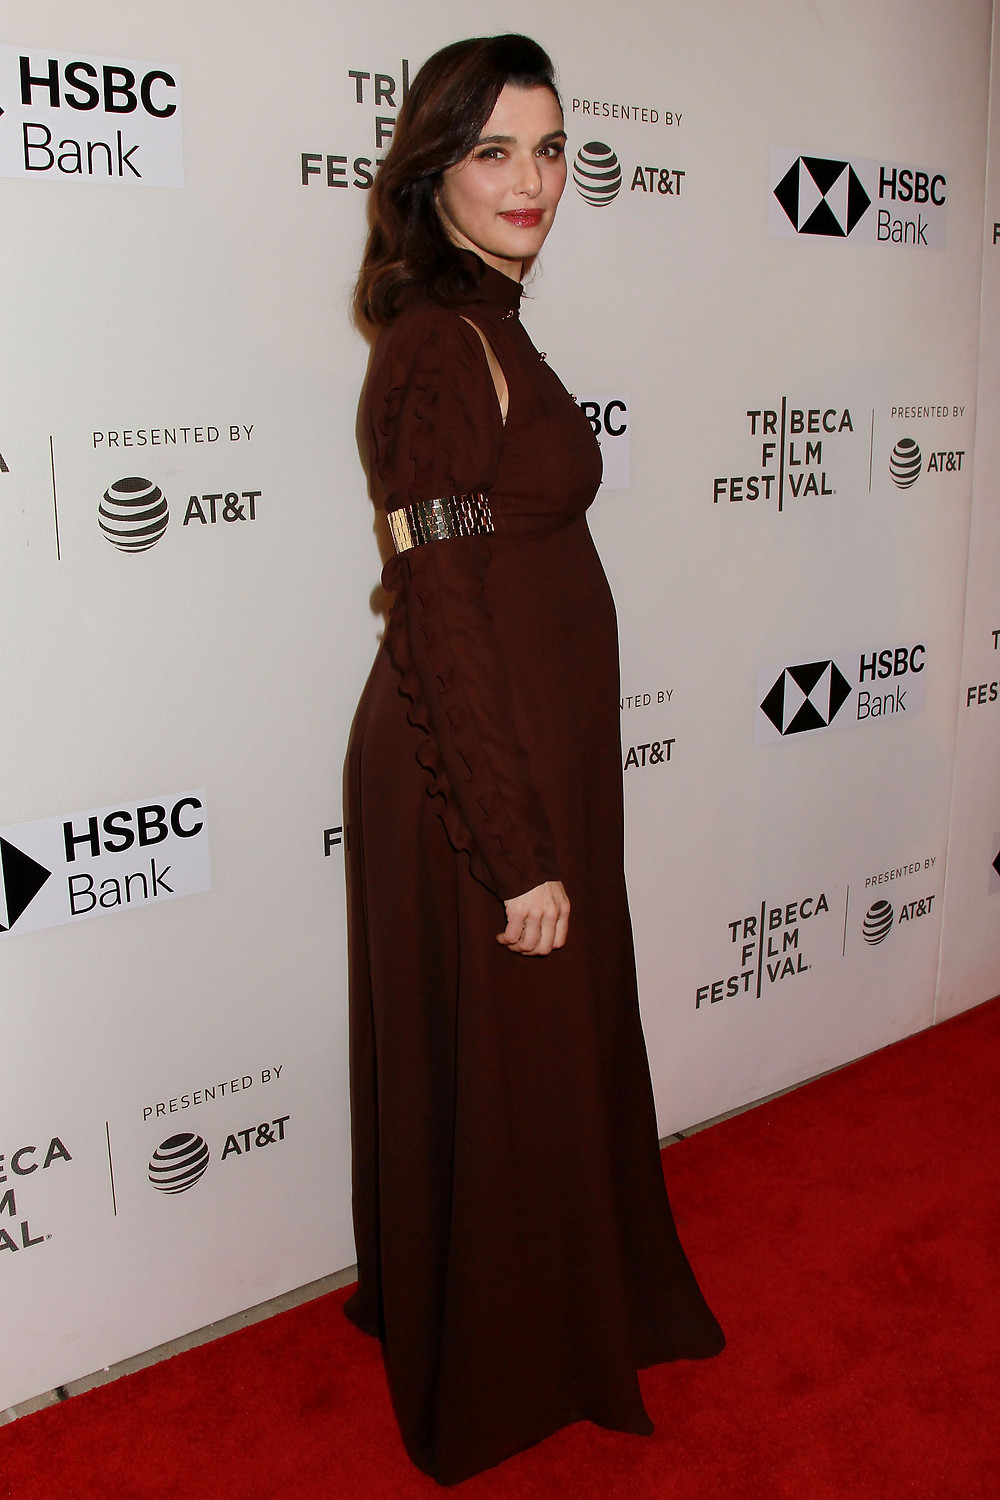 Producer and star of Disobedience, Rachel Weisz at the Tribeca Film Festival